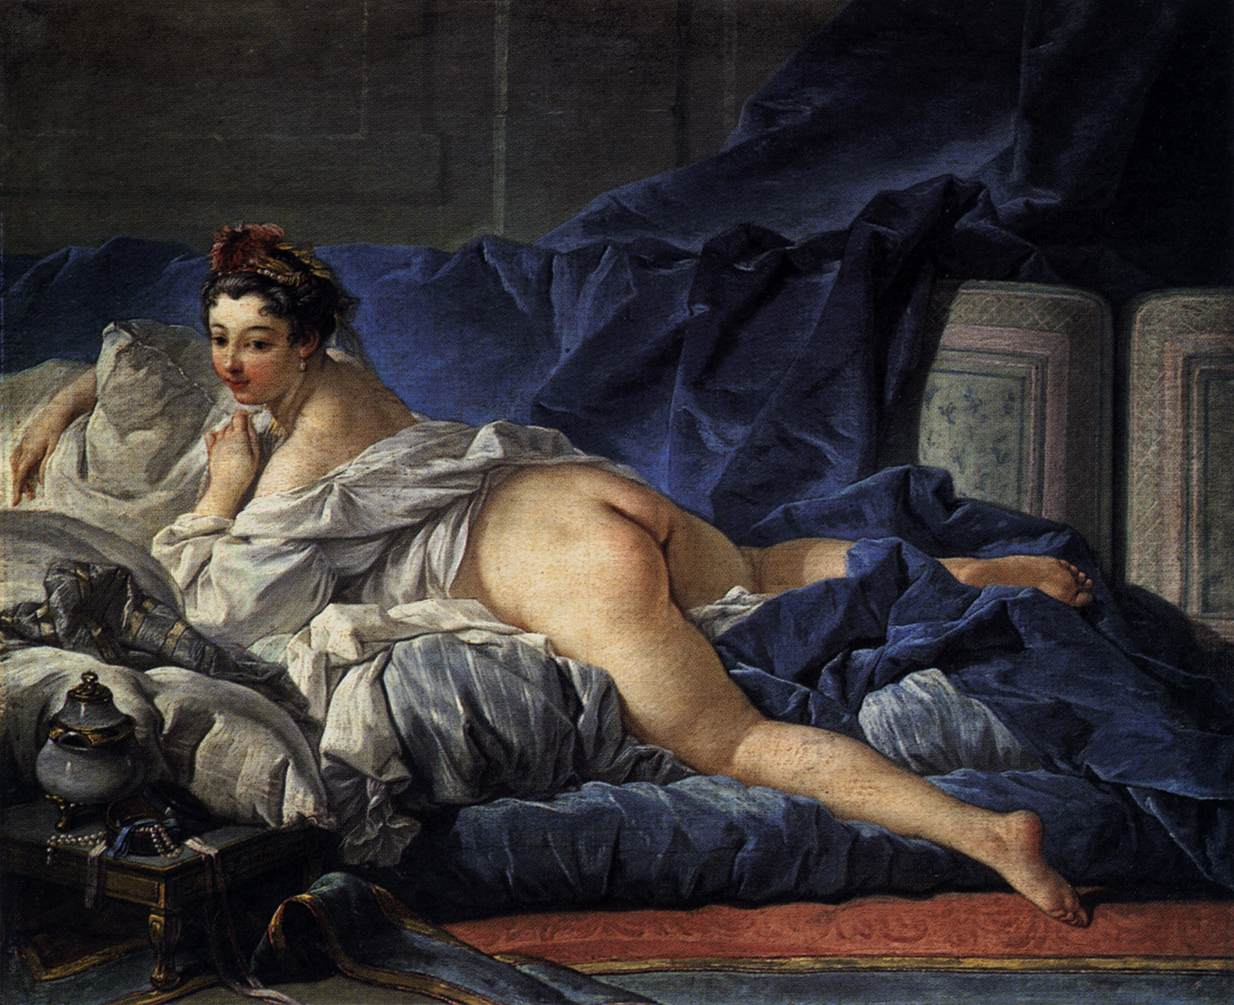 https://upload.wikimedia.org/wikipedia/commons/7/76/Fran%C3%A7ois_Boucher_-_Brown_Odalisque_%28L%27Odalisque_Brune%29_-_WGA2879.jpg